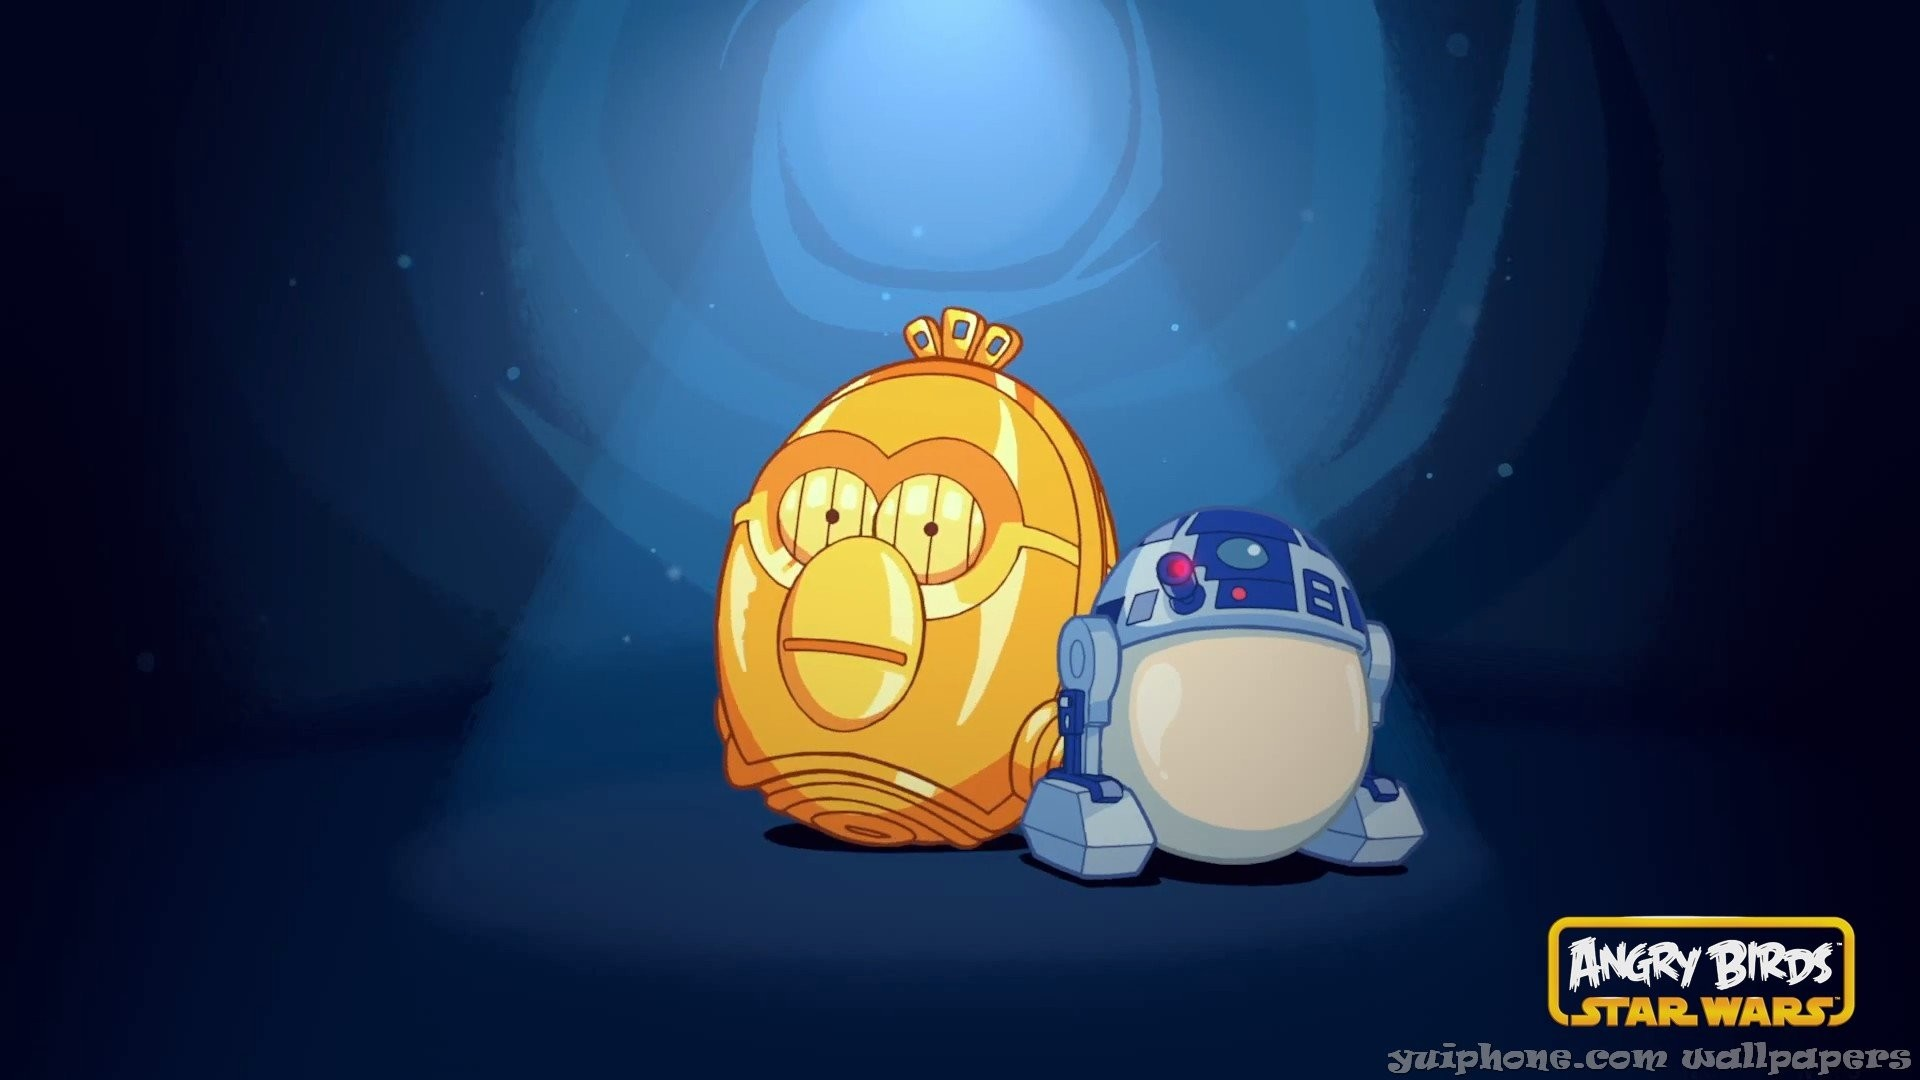 Angry Birds Star Wars R2D2 …